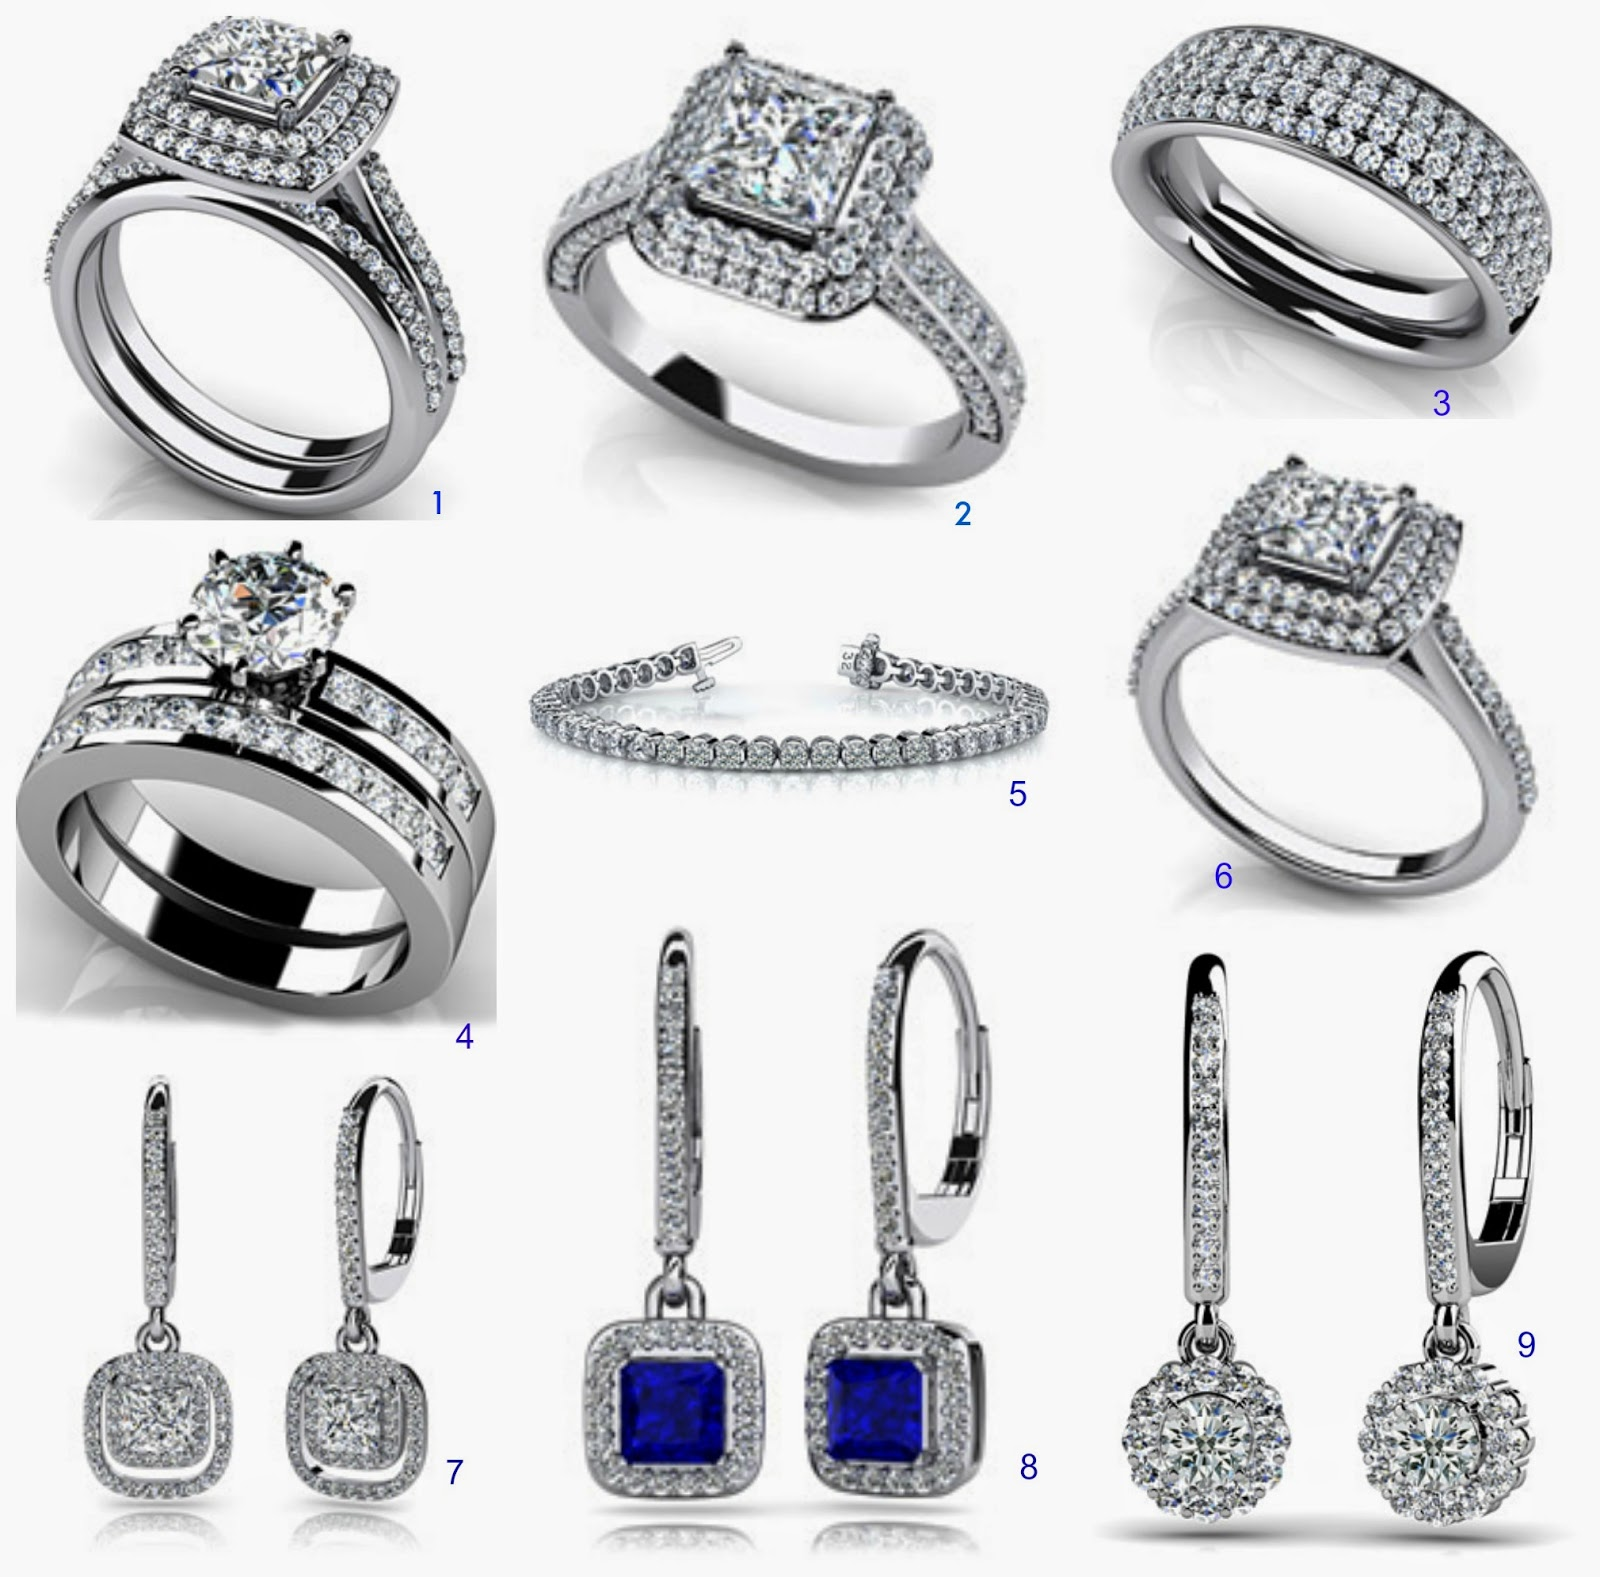 Anjolee Jewelry Review, engagement rings, wedding rings affordable, Anniversary jewelry